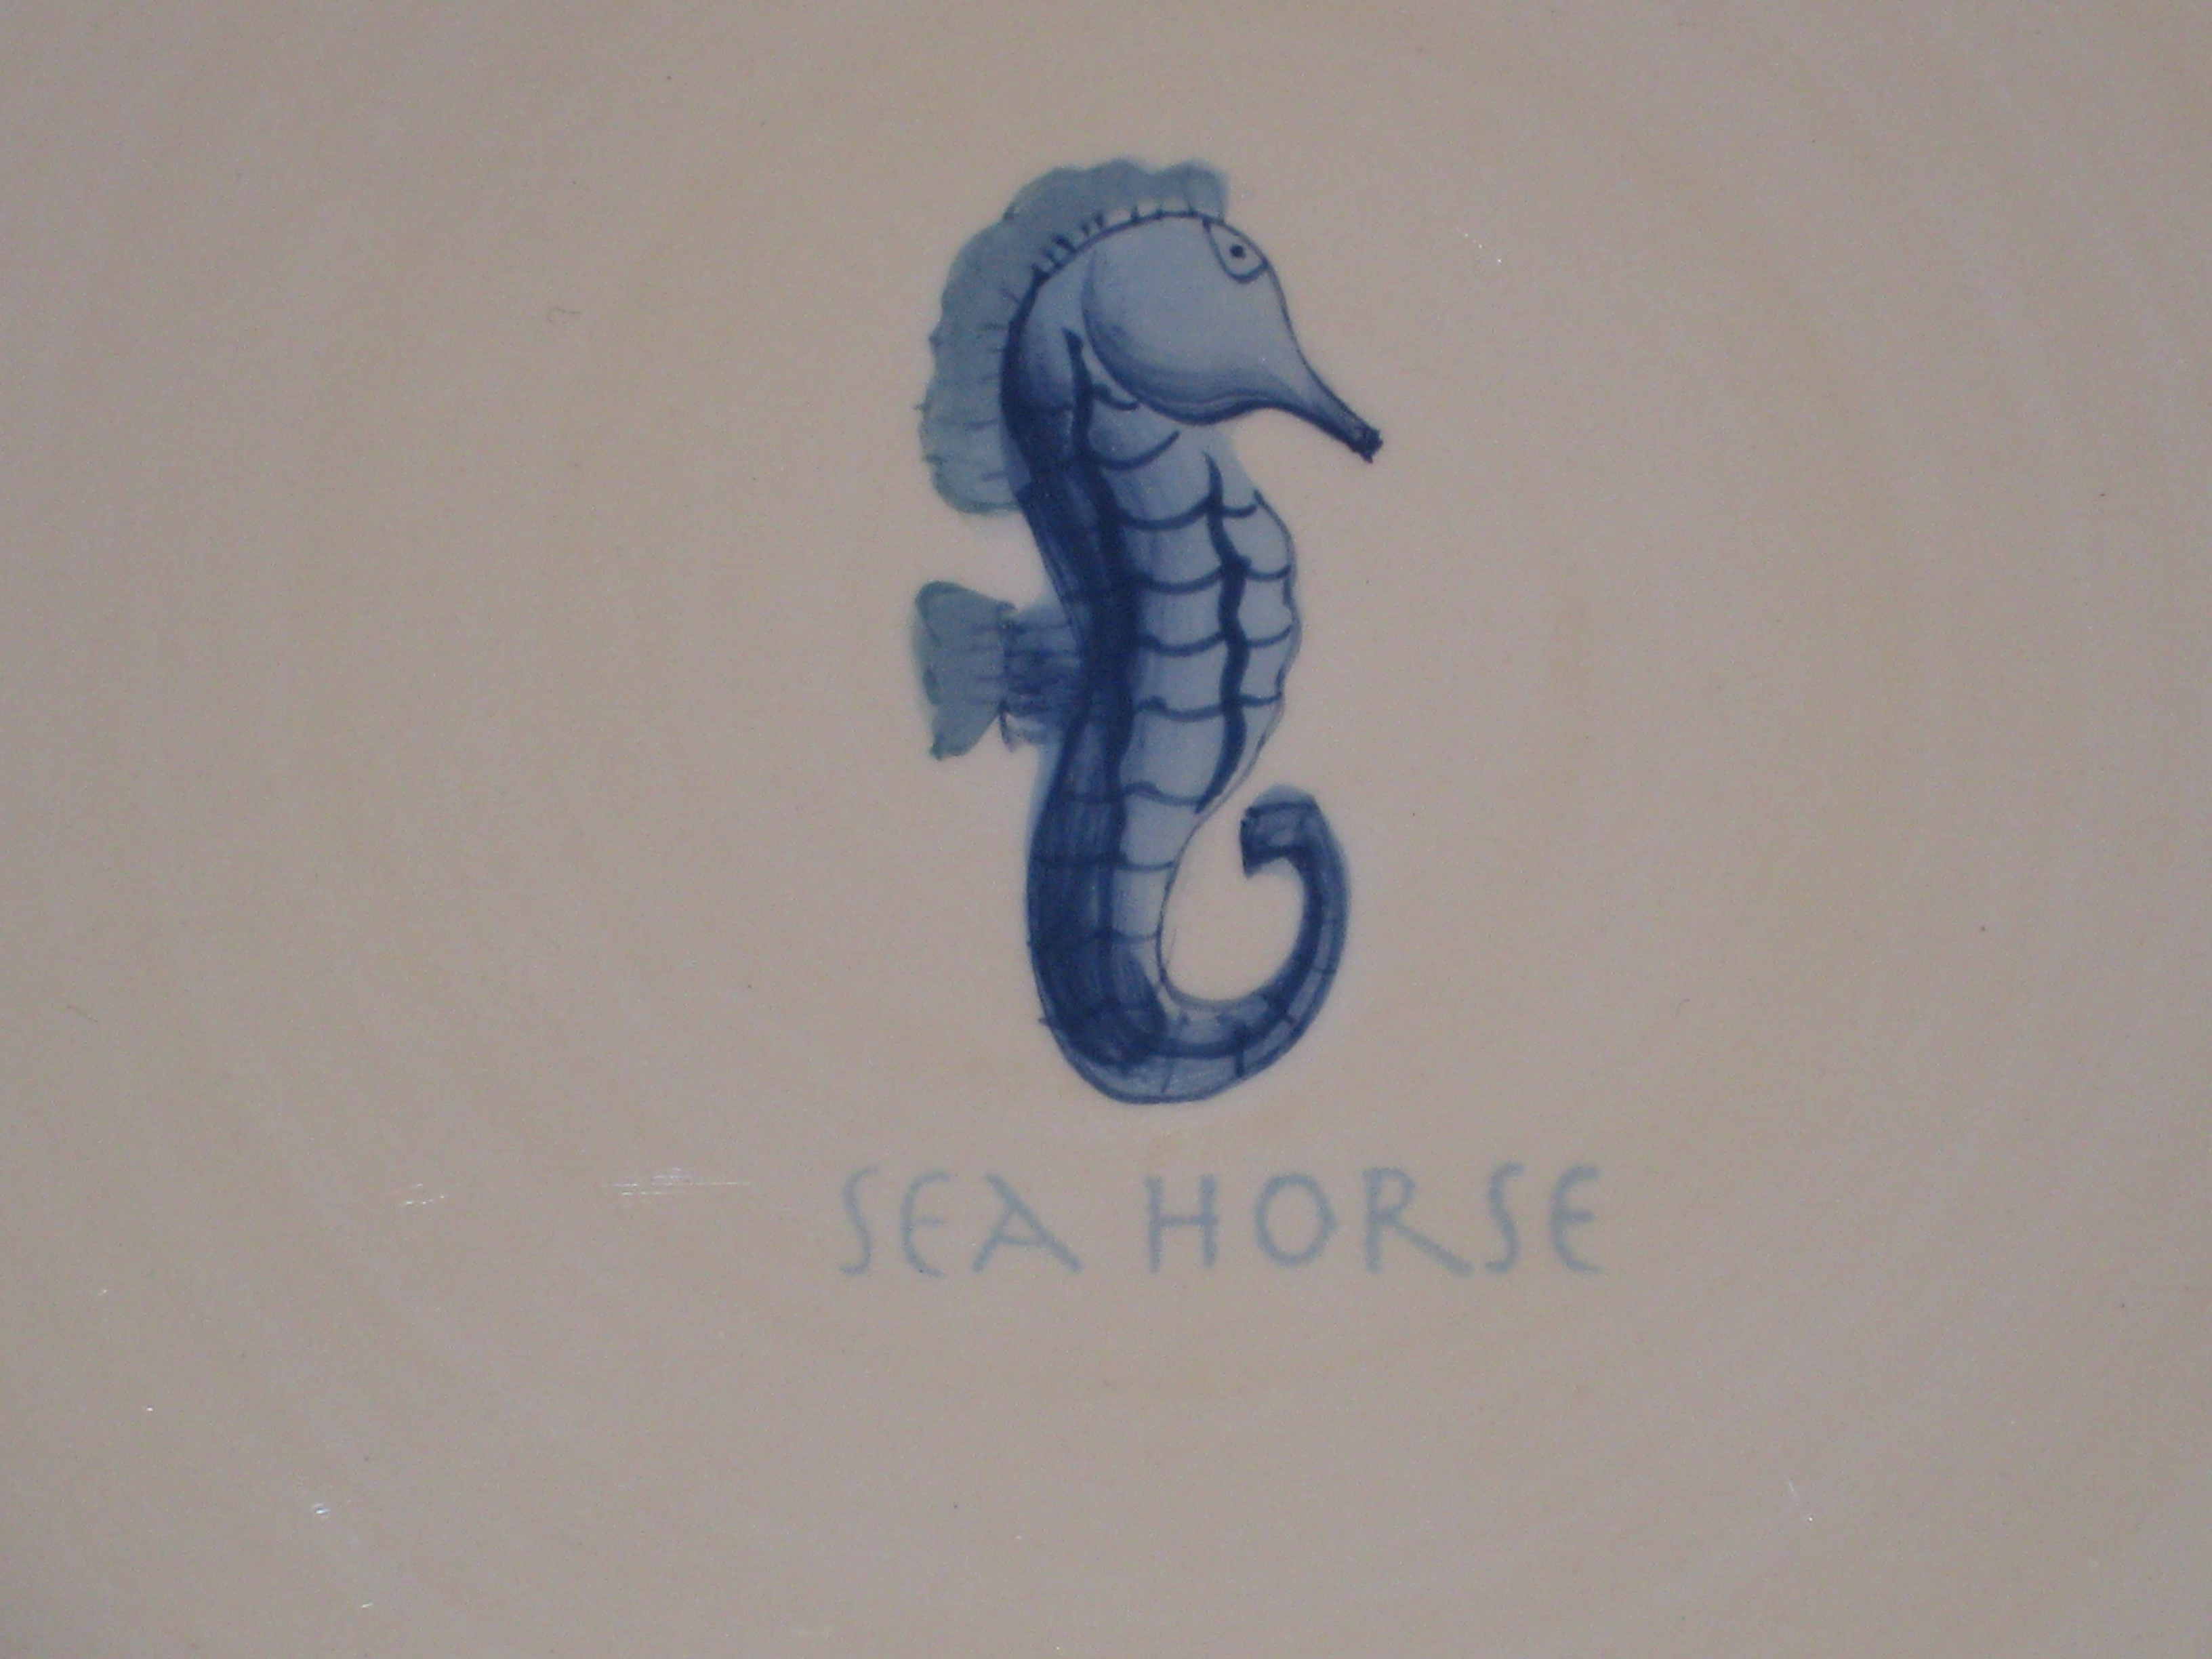 Reference Image of Seahorse